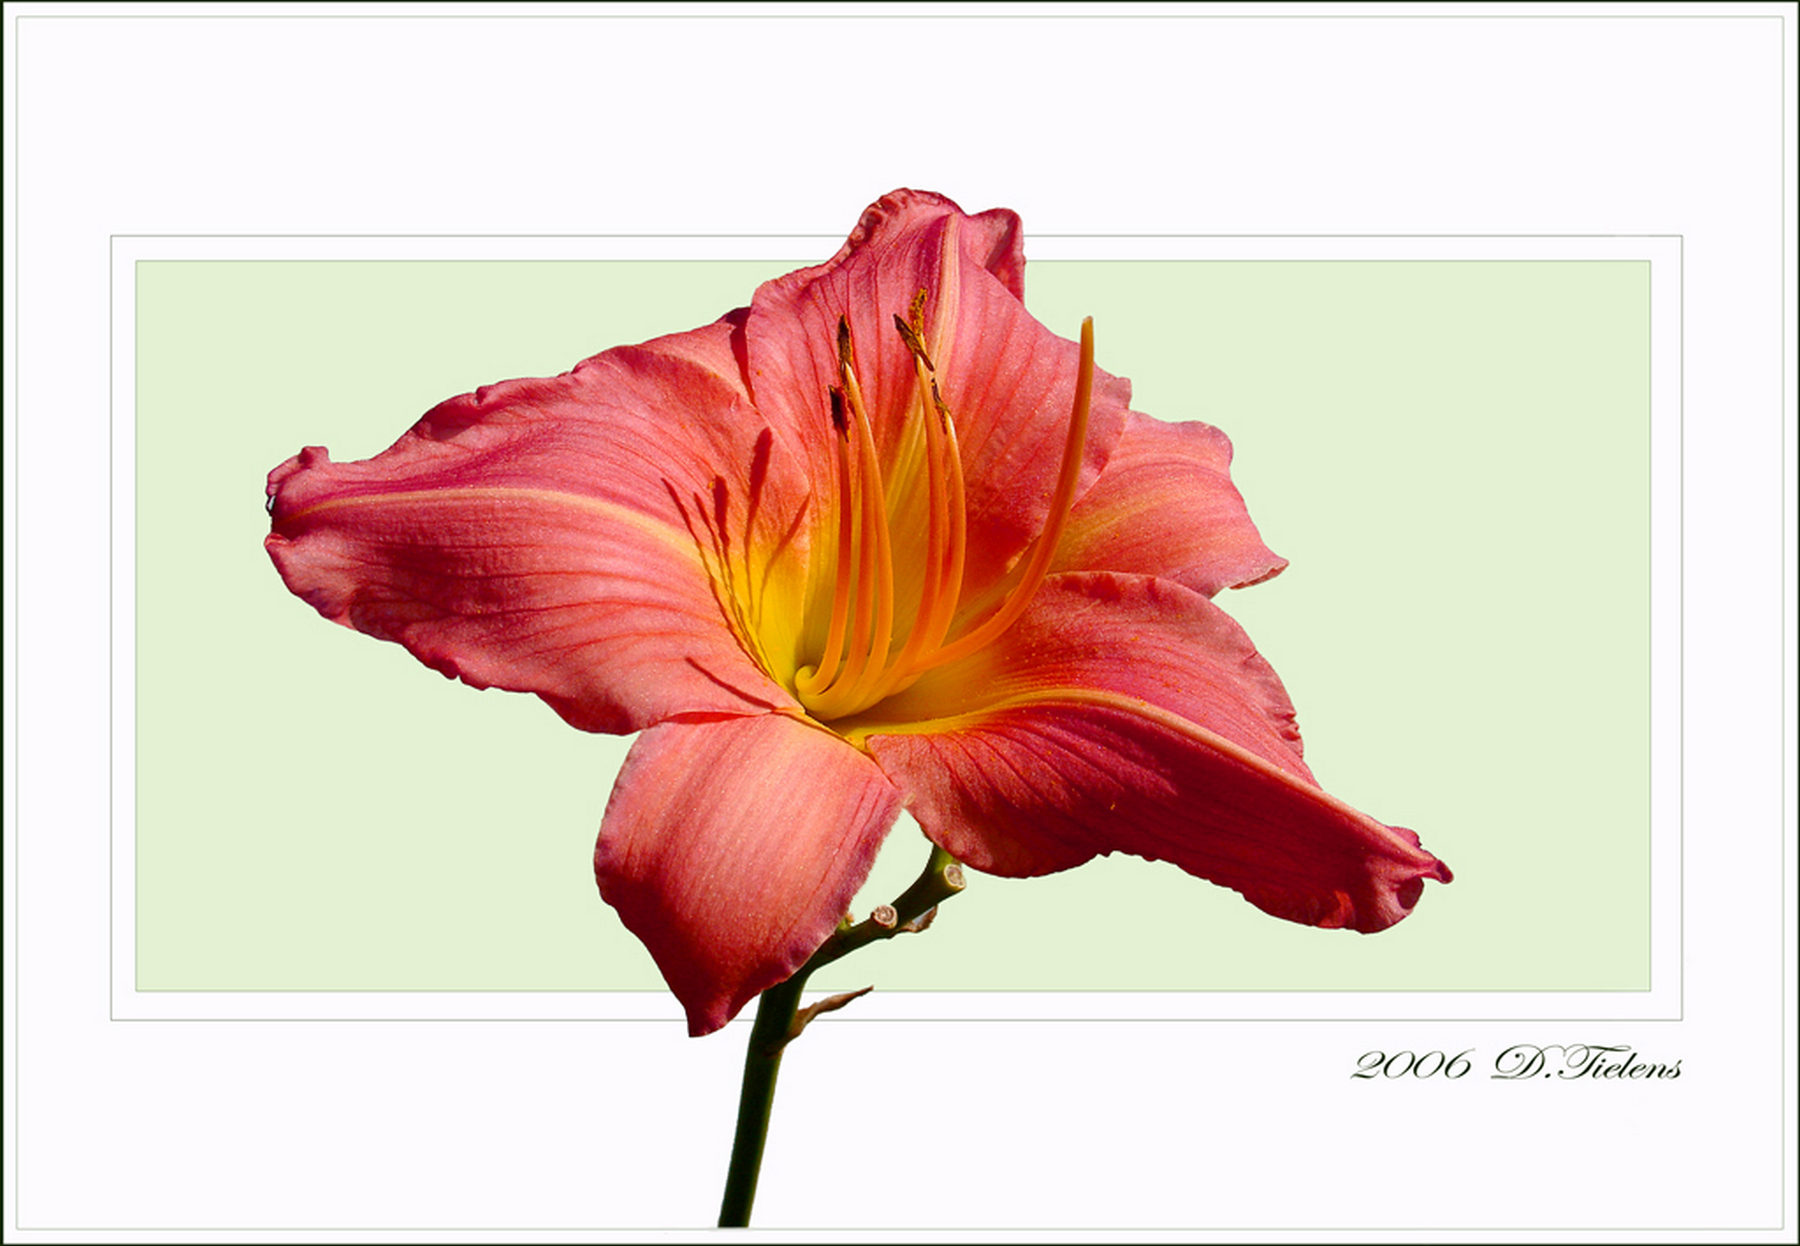 Hemerocallis-Glorie Ritchie 02.jpg -